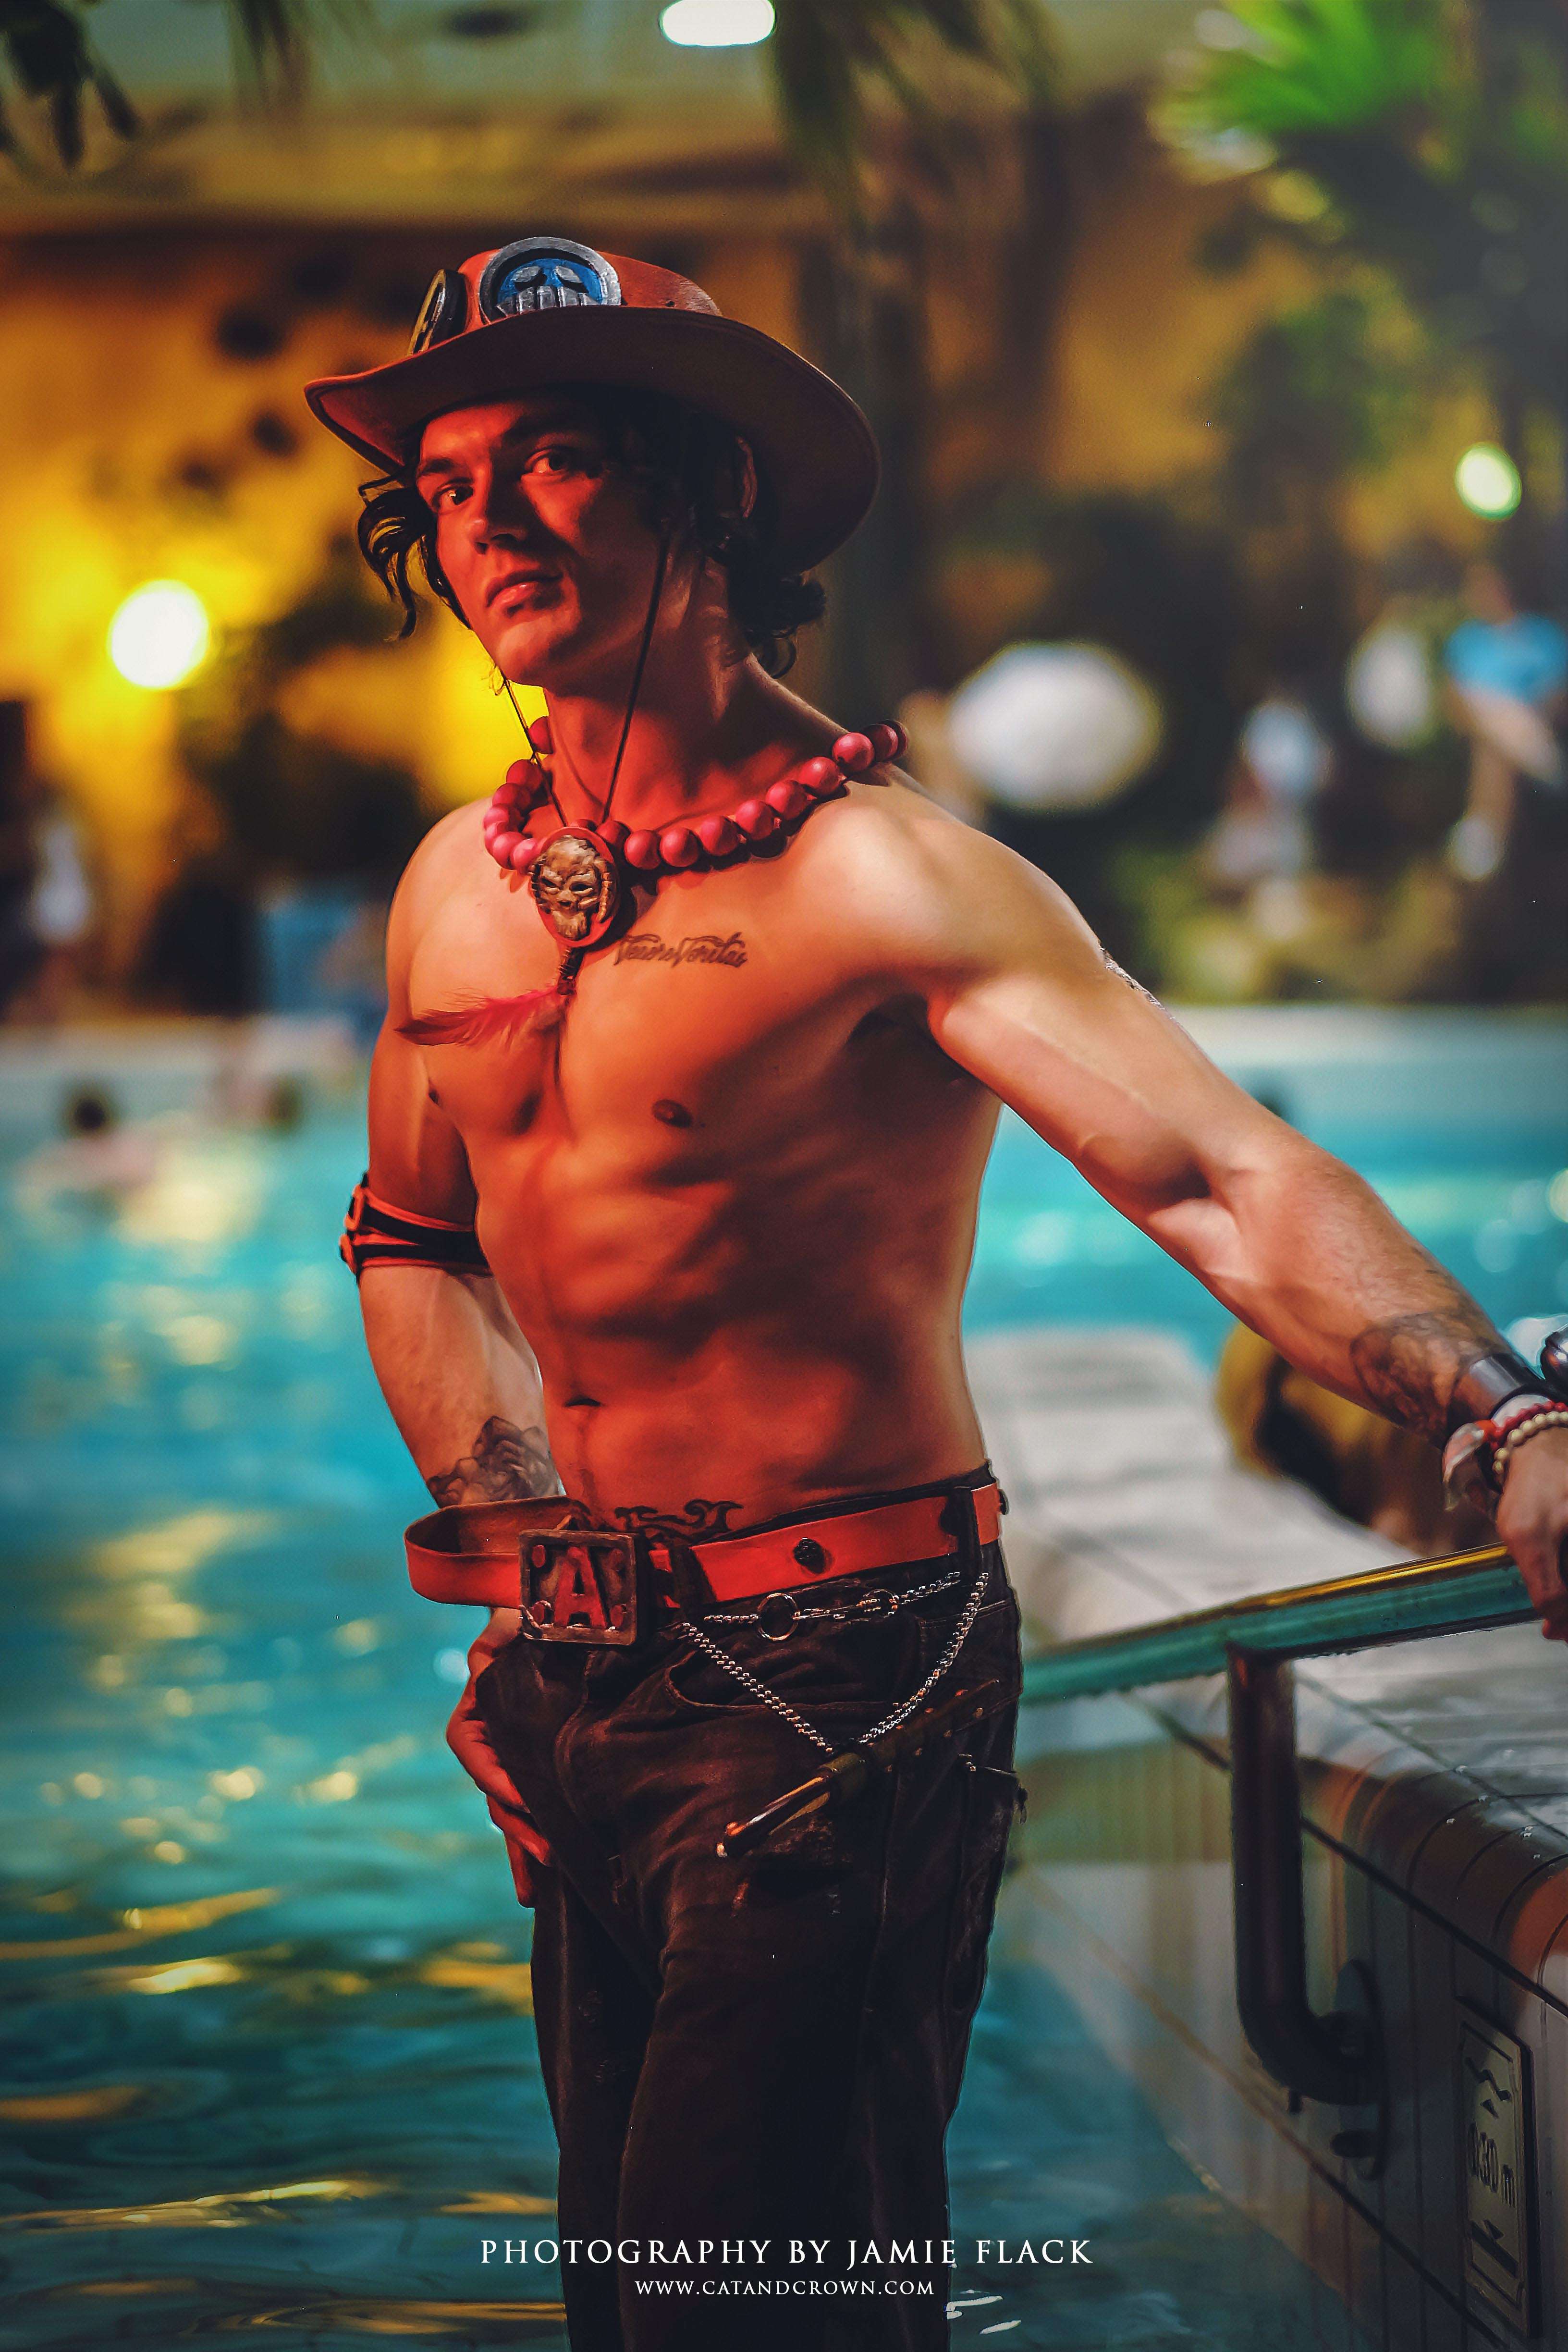 Firefist Ace cosplay from One Piece